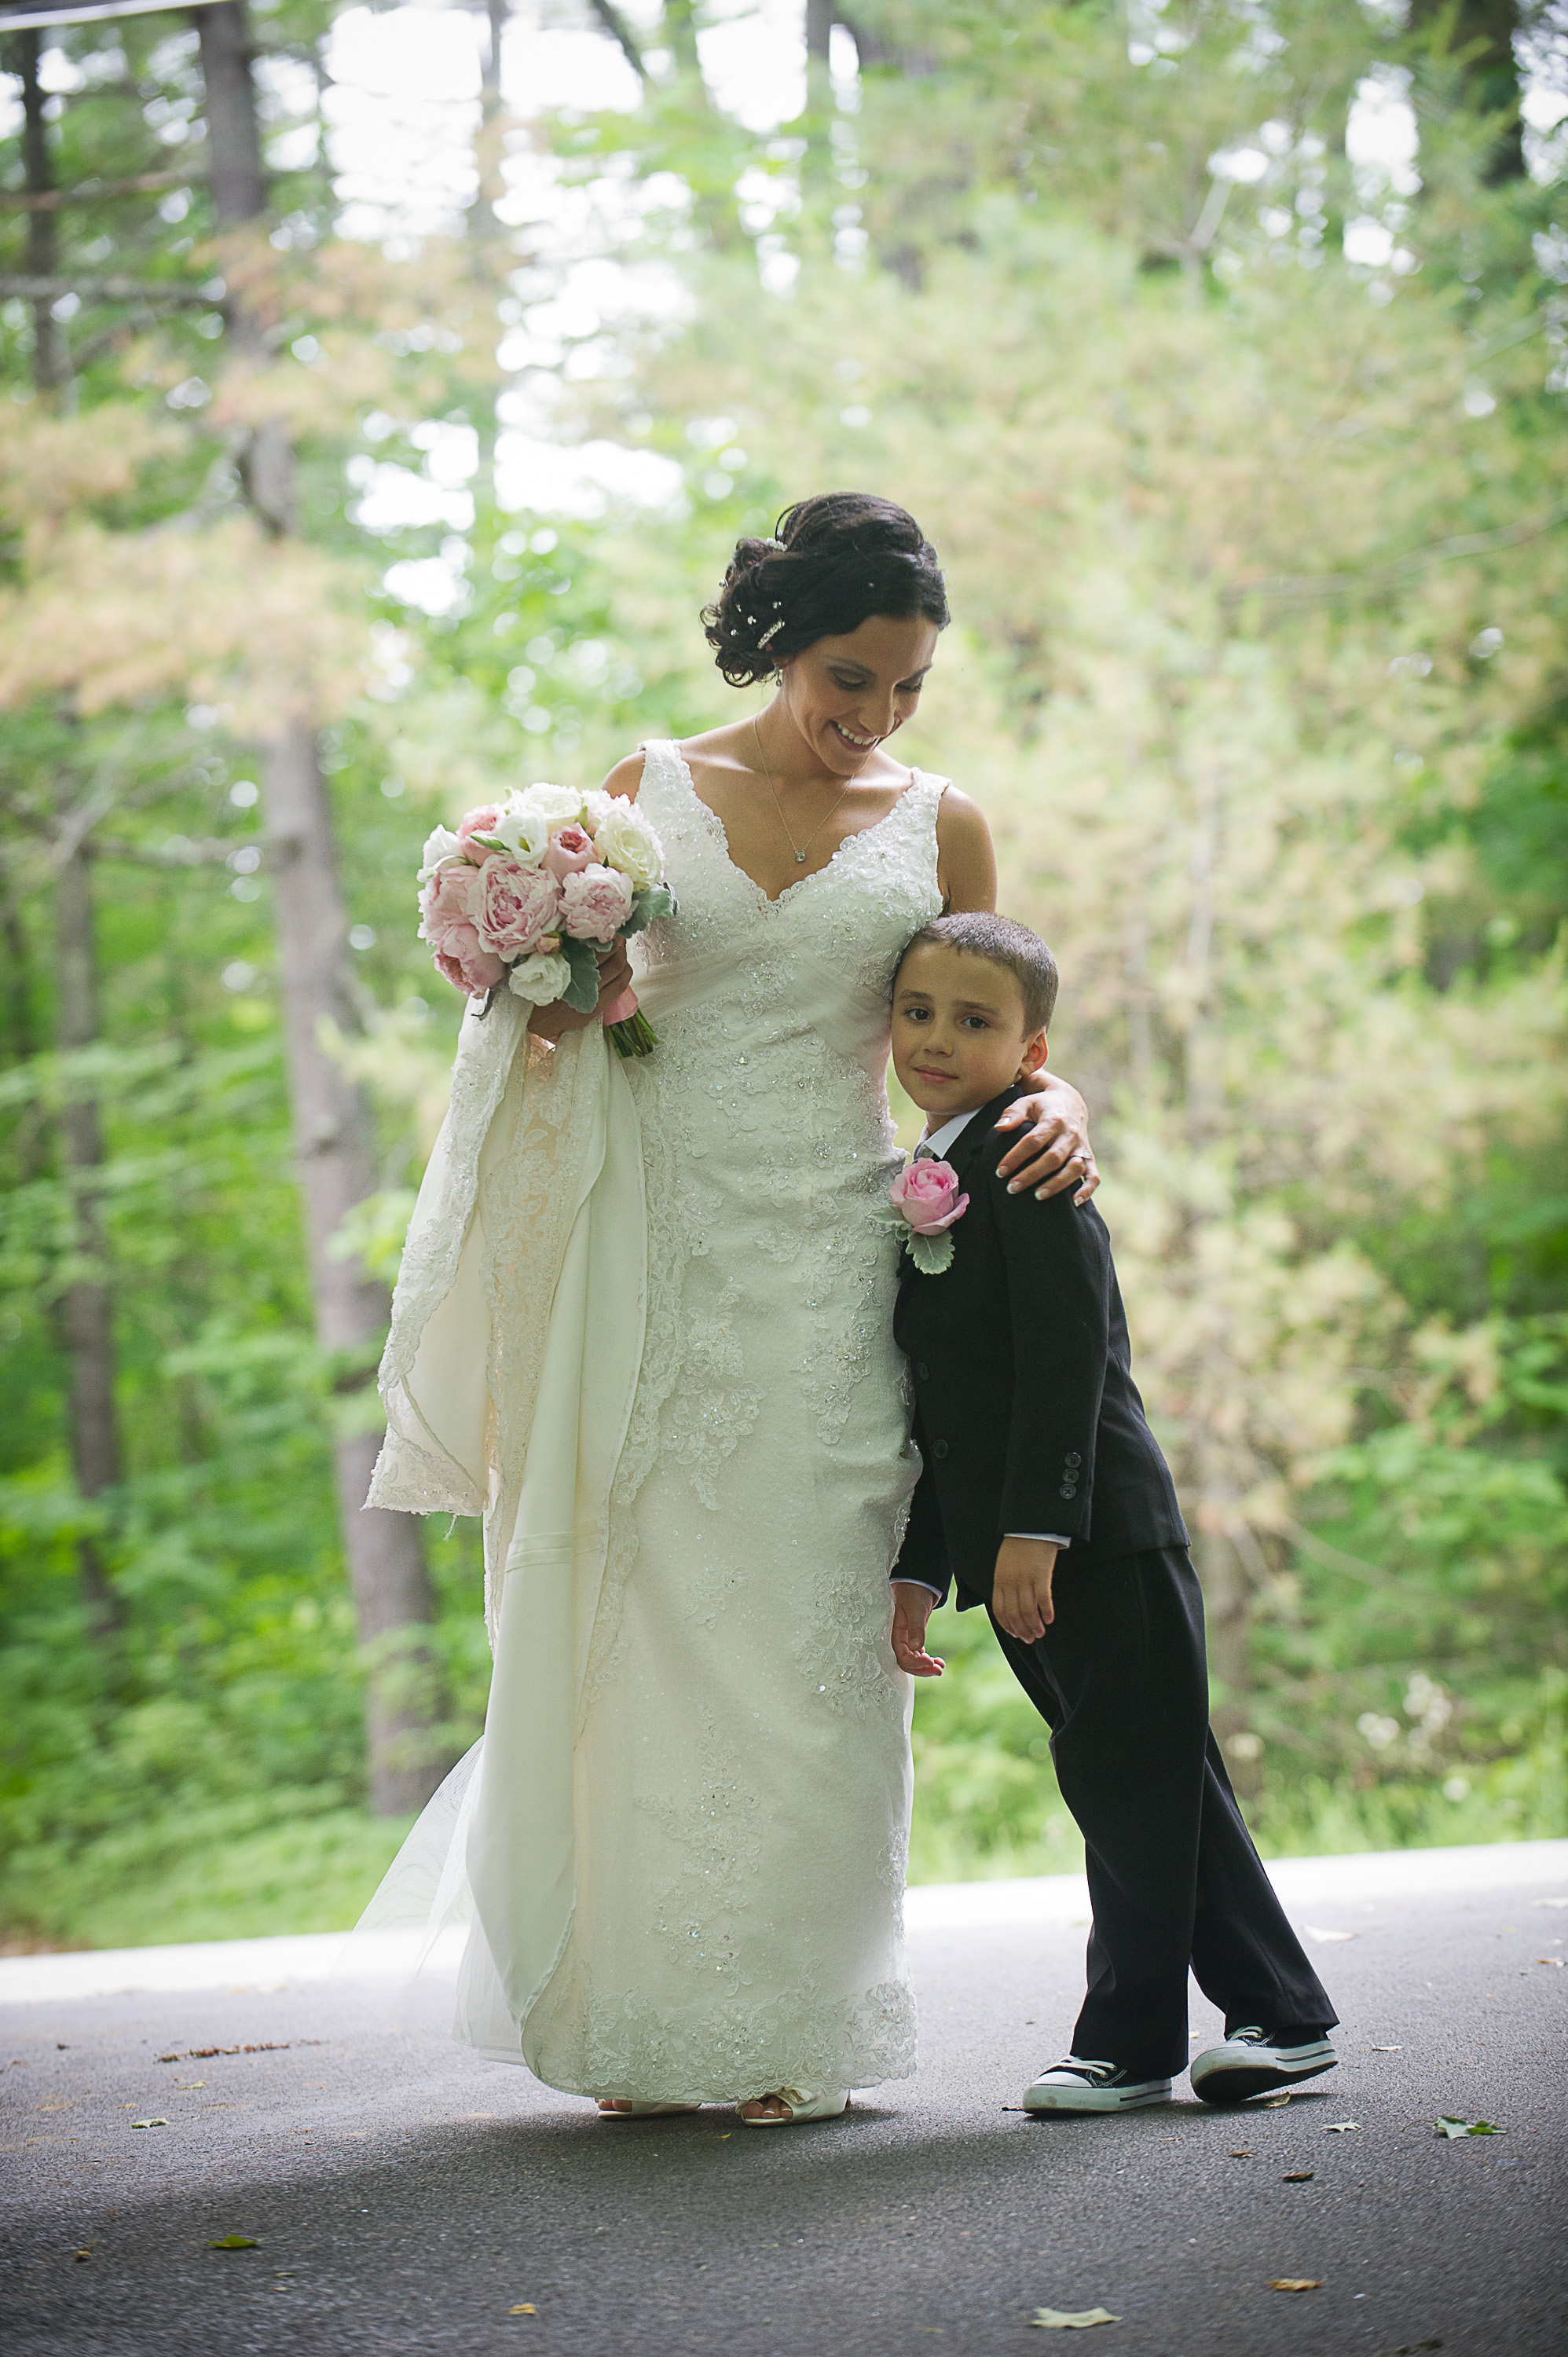 NYC-Wedding-Planner-Andrea-Freeman-Events-Hudson-Valley-Catskills-Private-Estate-16.jpg